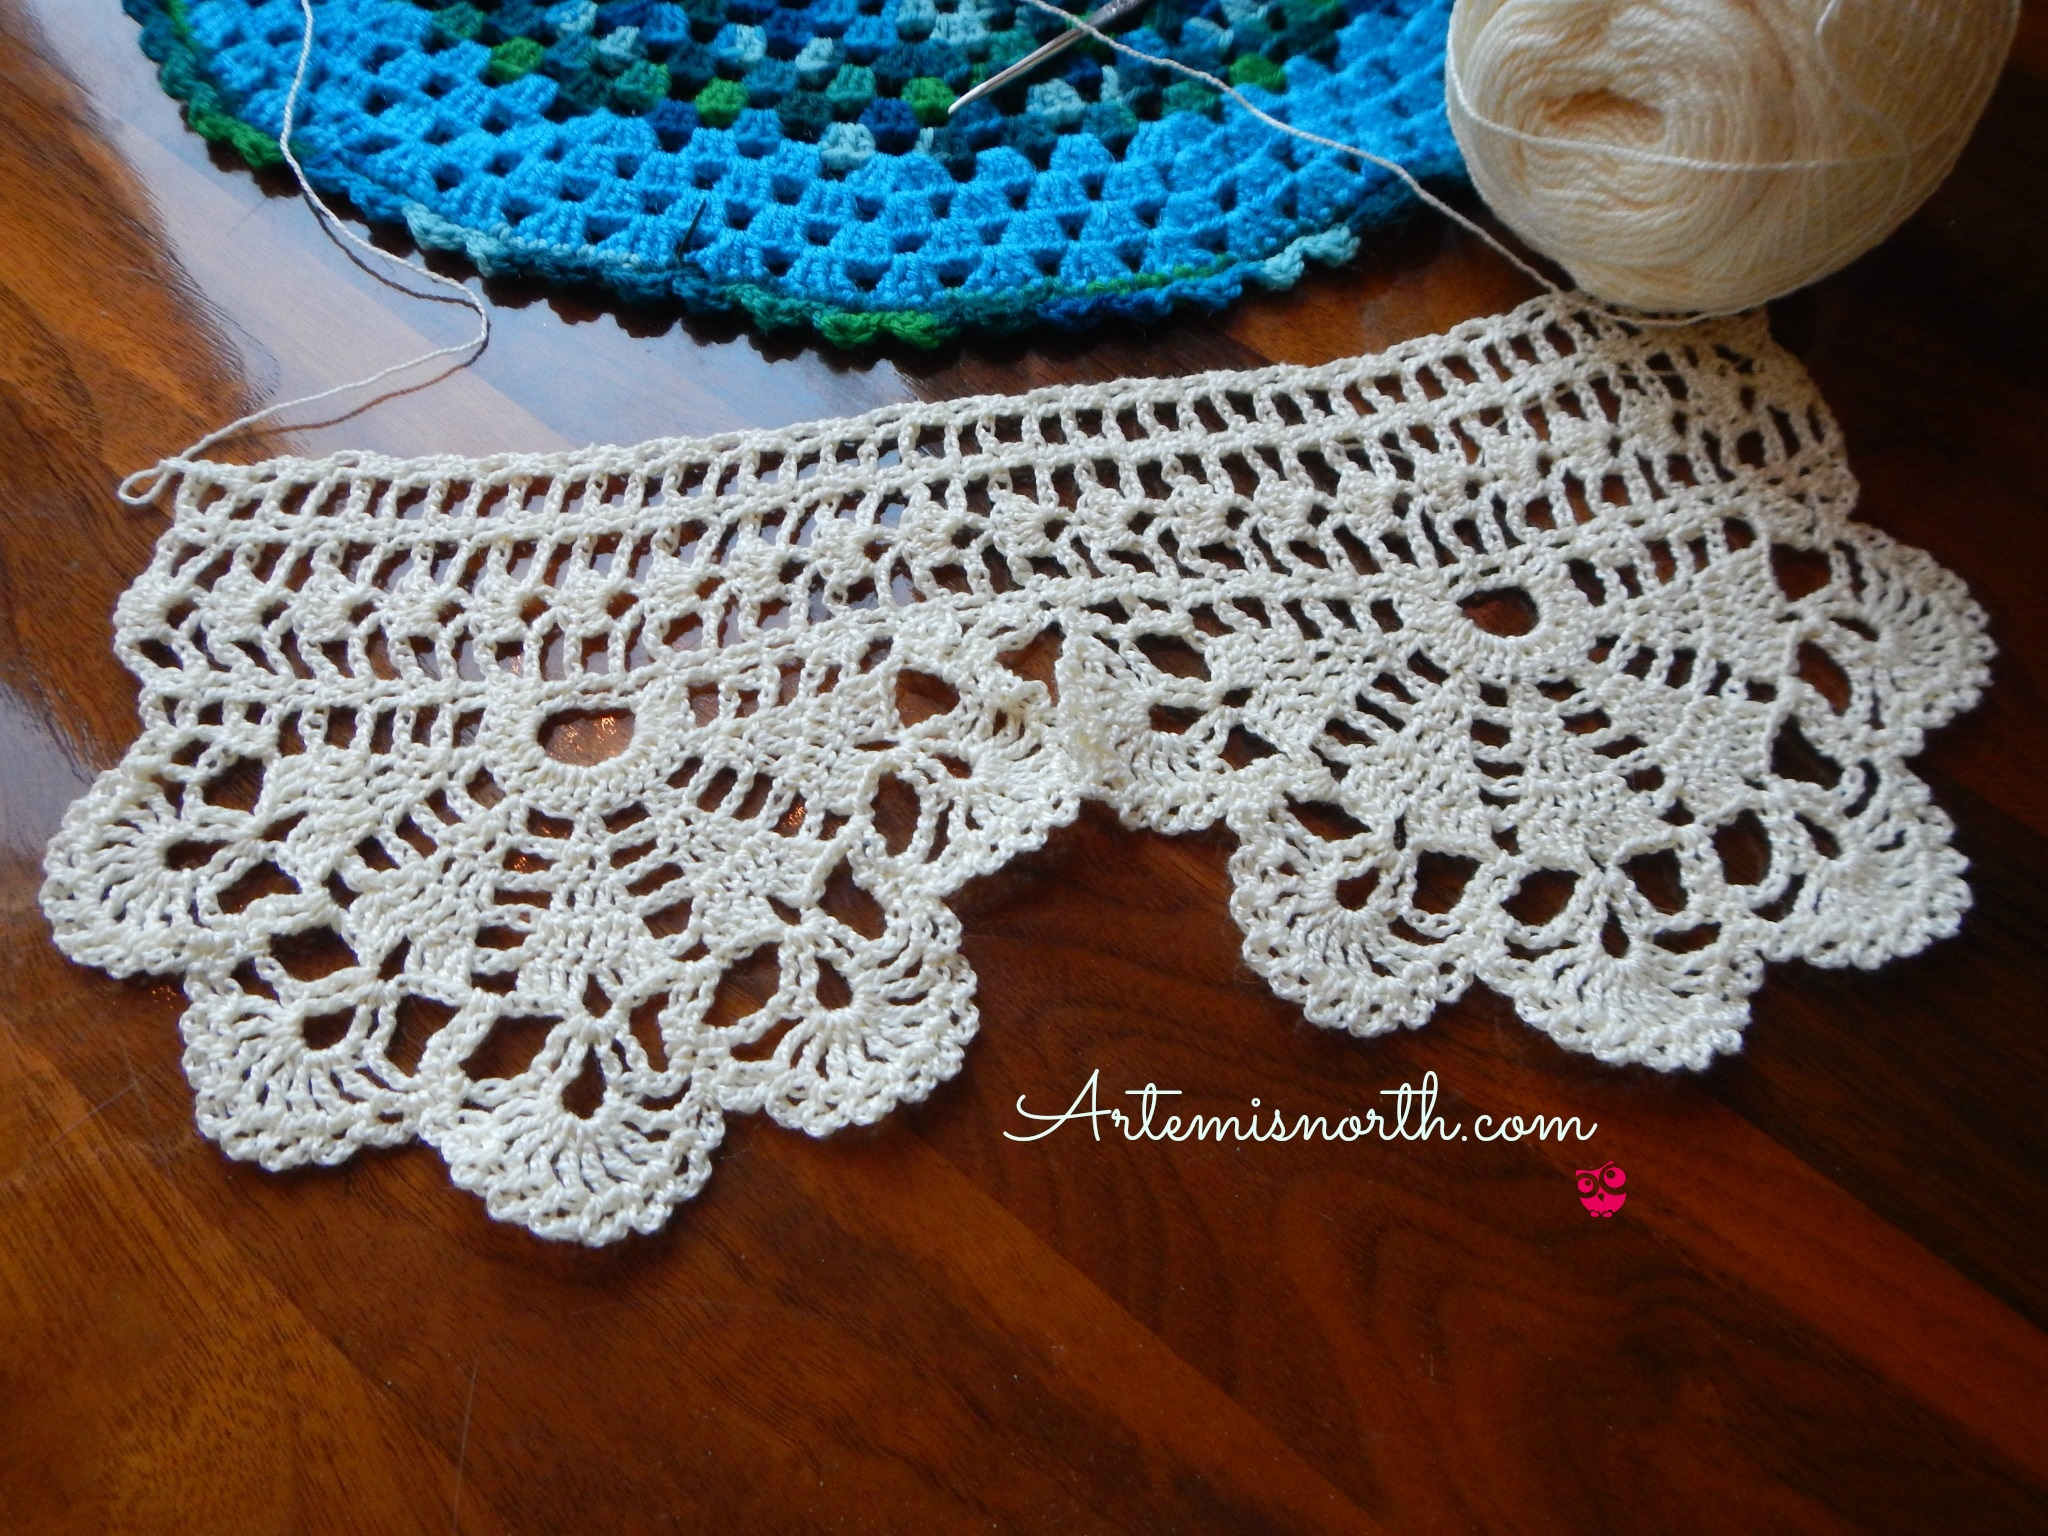 Free Crochet Pattern: Wide Economy Lace Edging